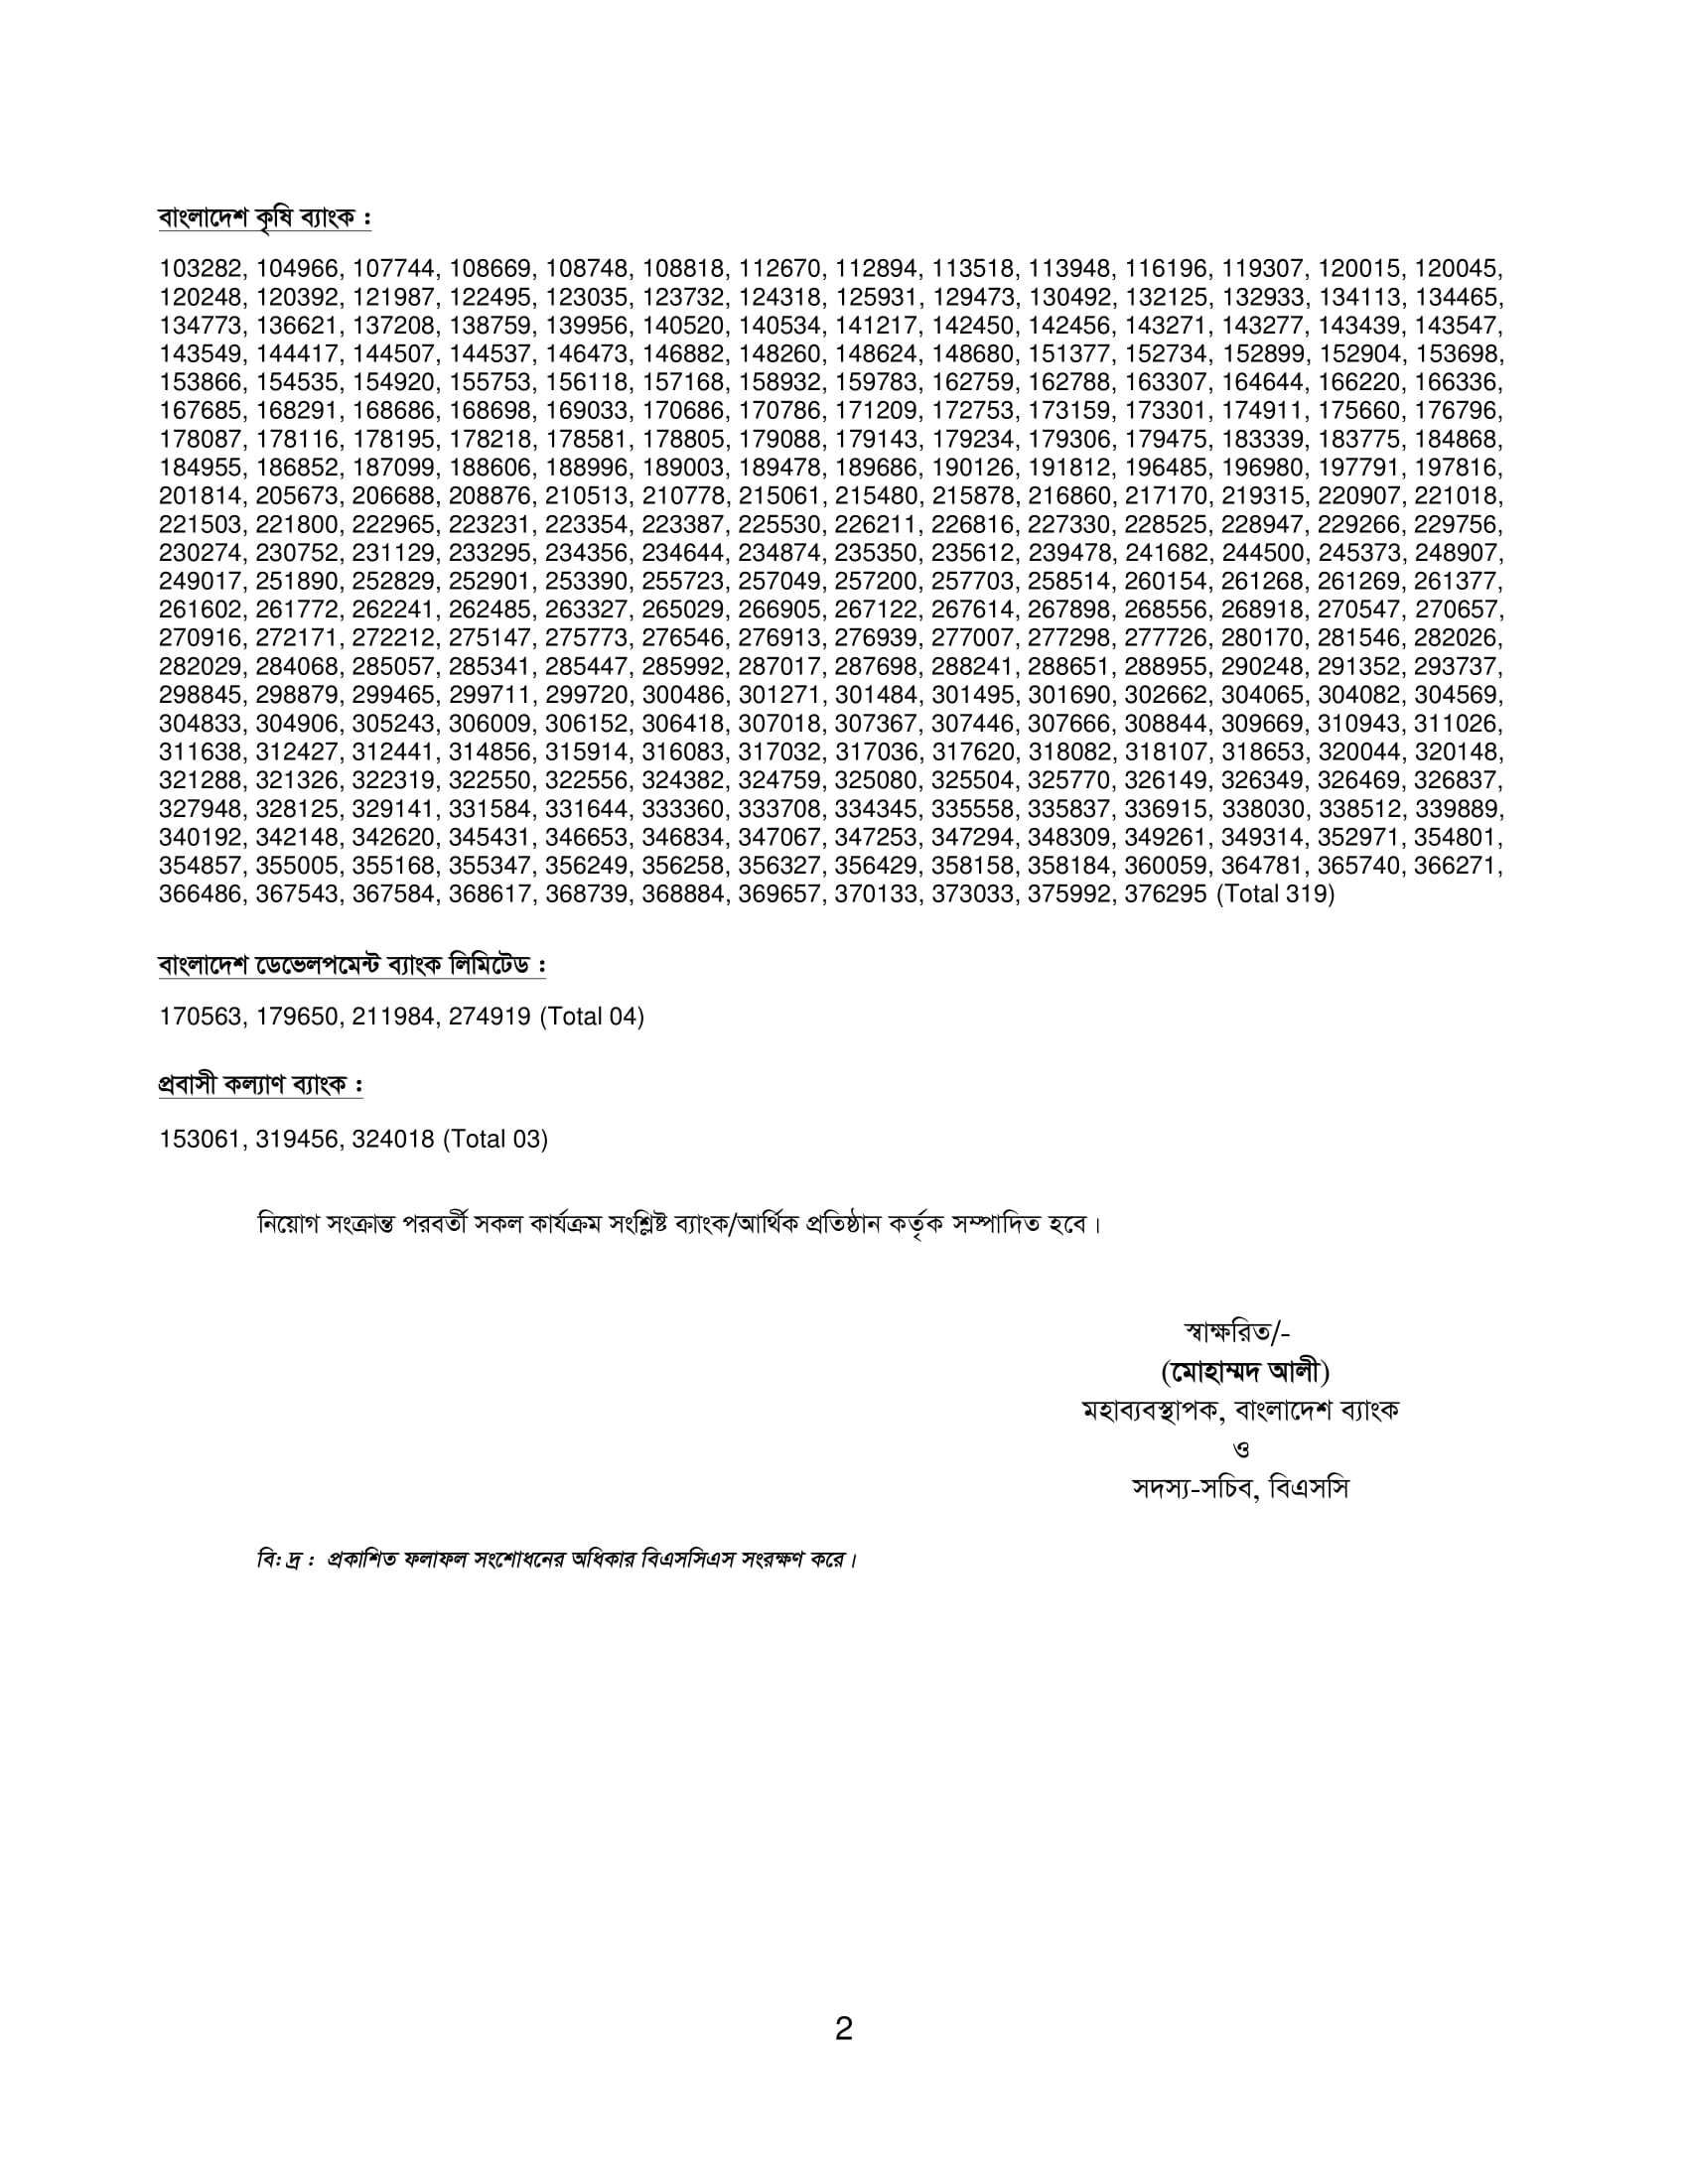 Combined 5 Bank Officer (Cash) Written Result And Viva